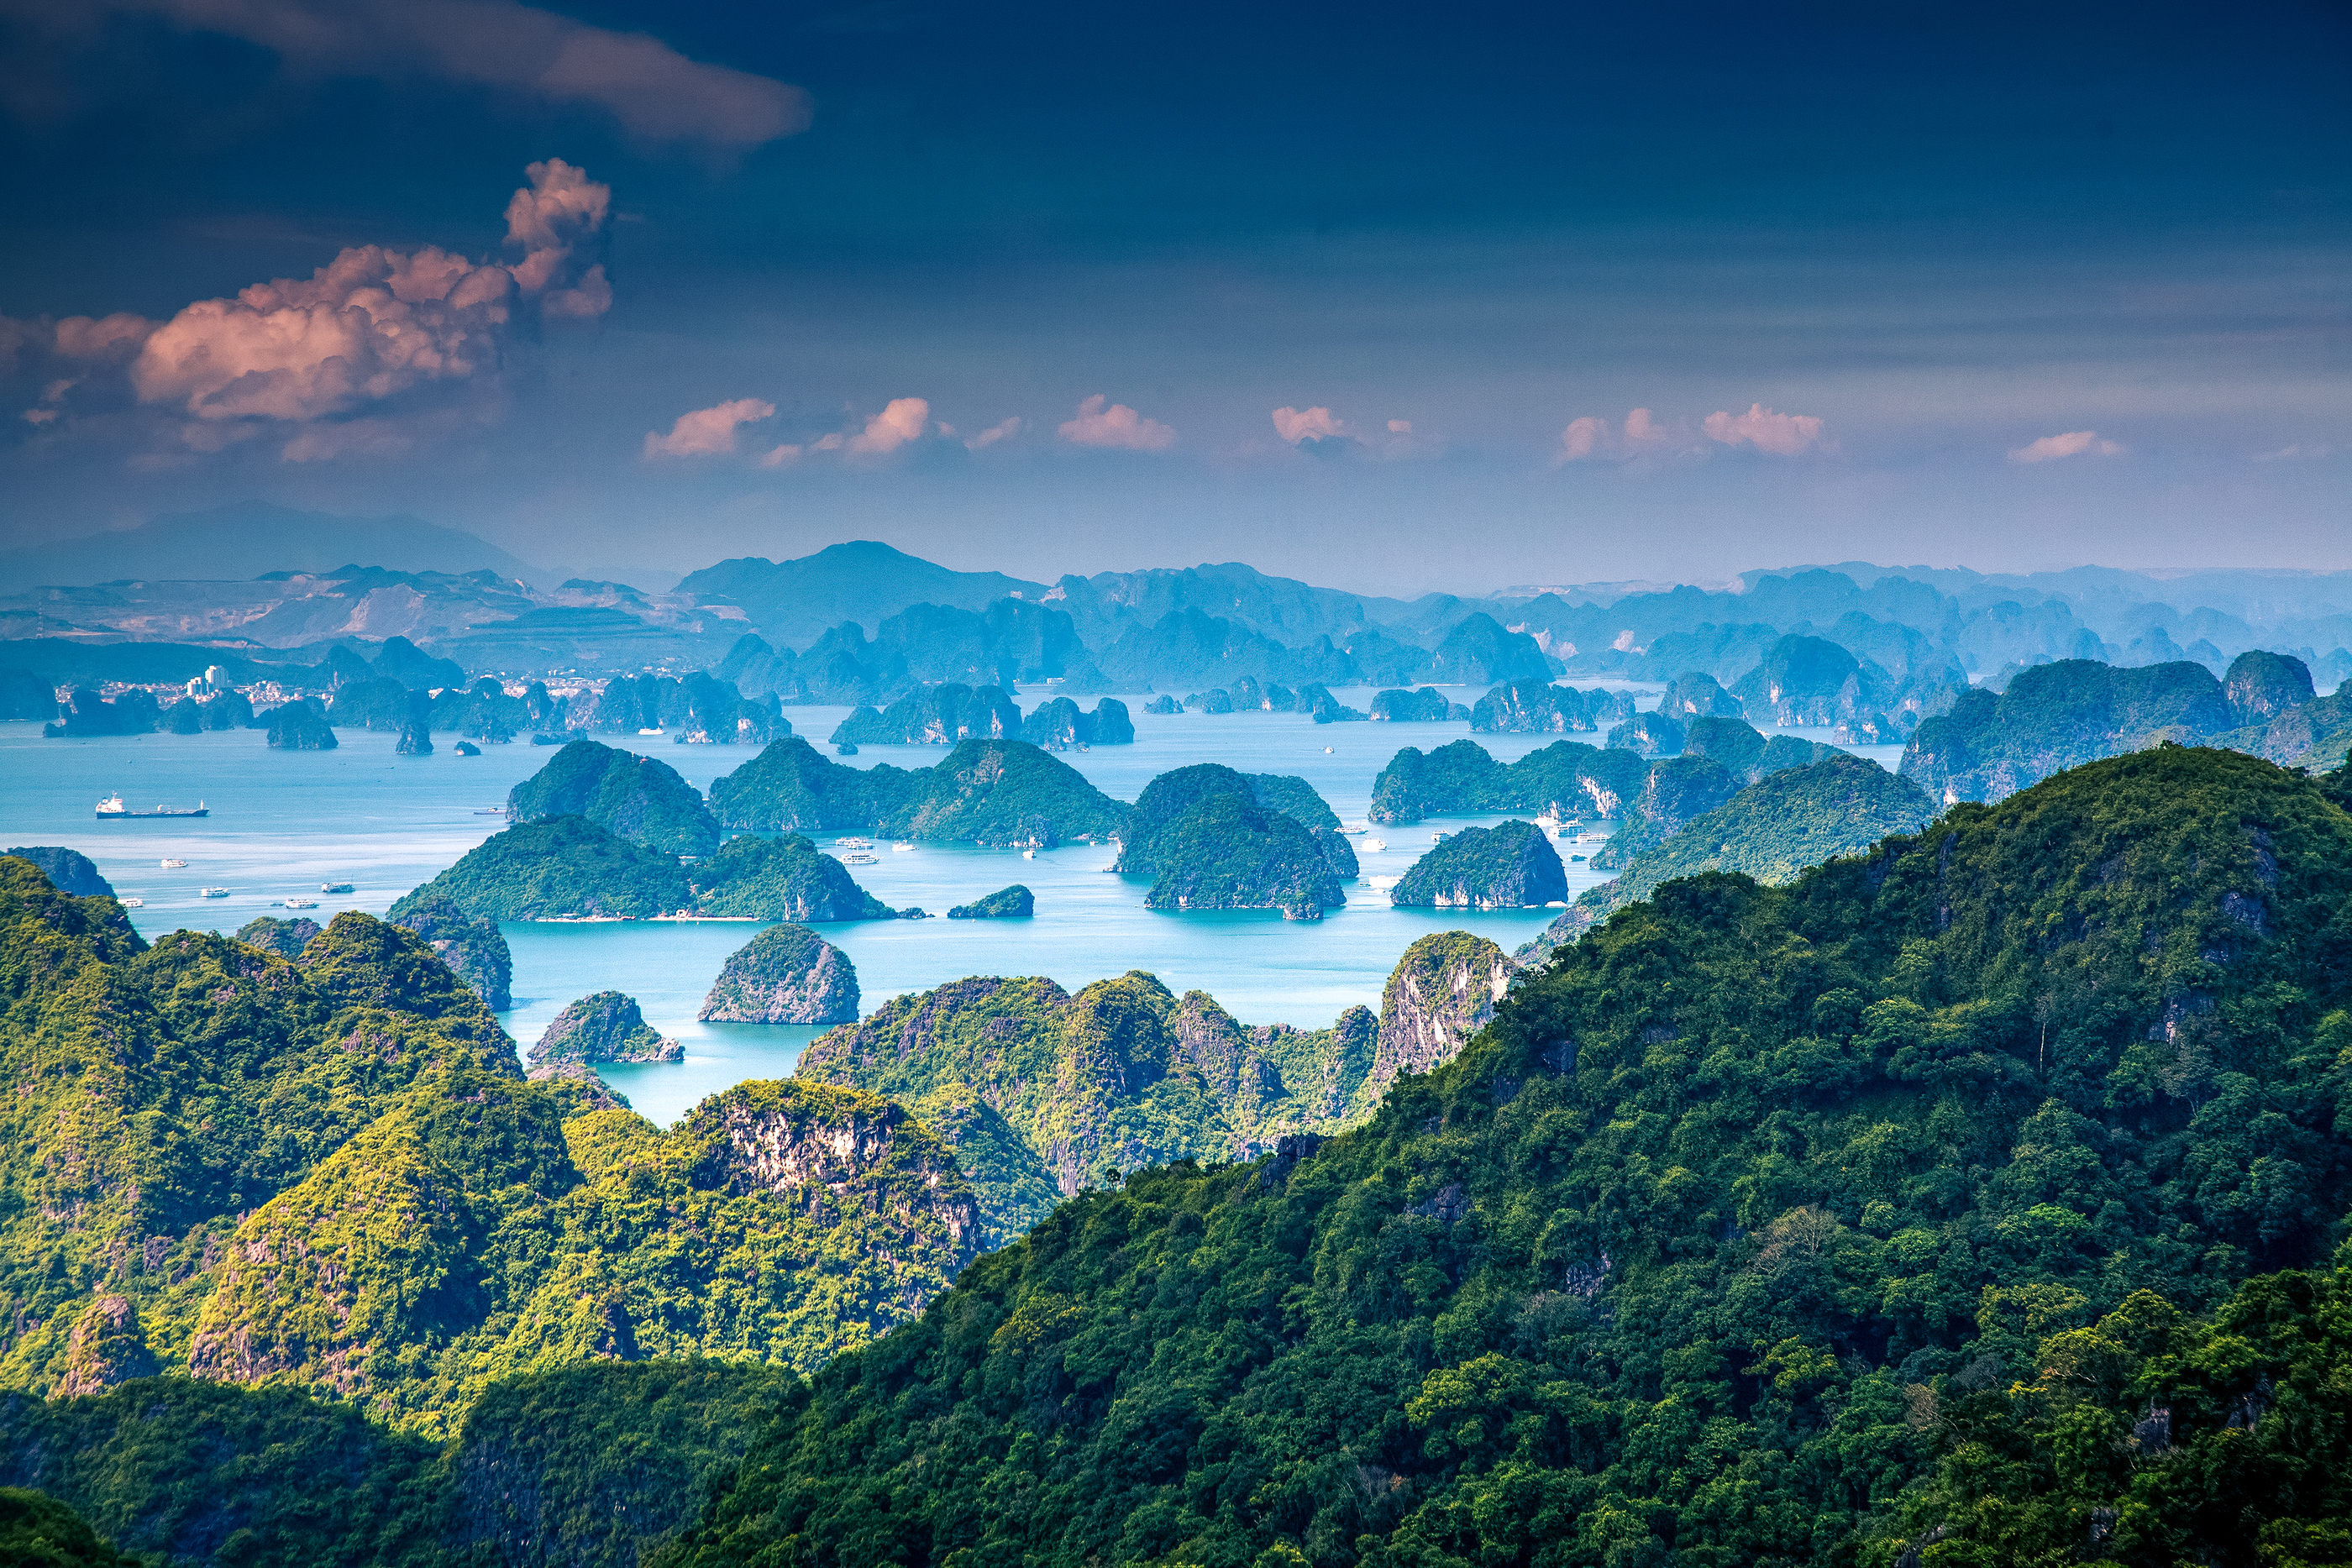 bigstock-scenic-view-over-Ha-Long-bay-f-